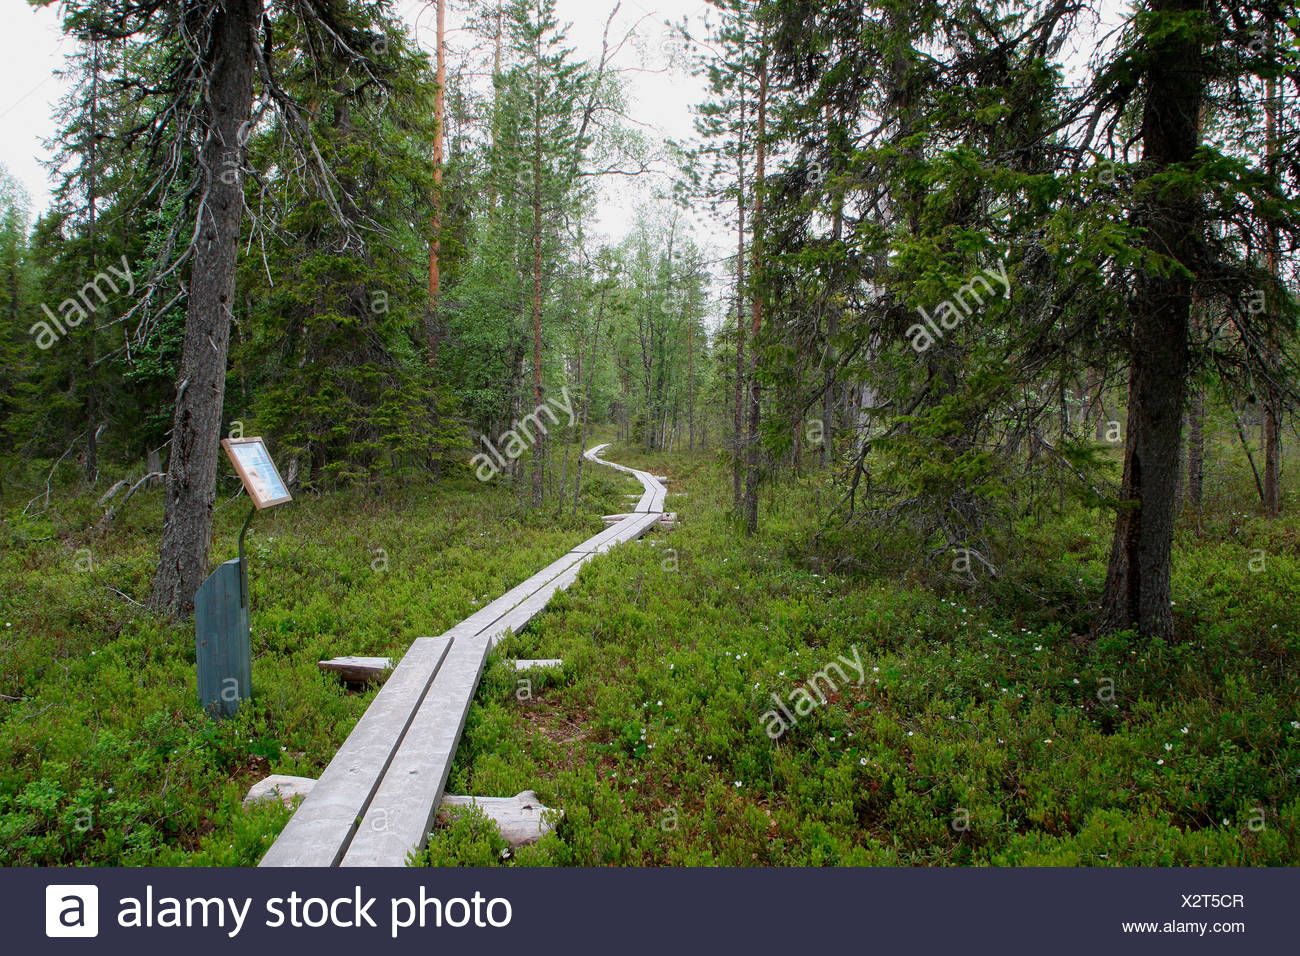 Hiking trail in Oulanka National Park, Lapland, Finland, Europe - Stock Image